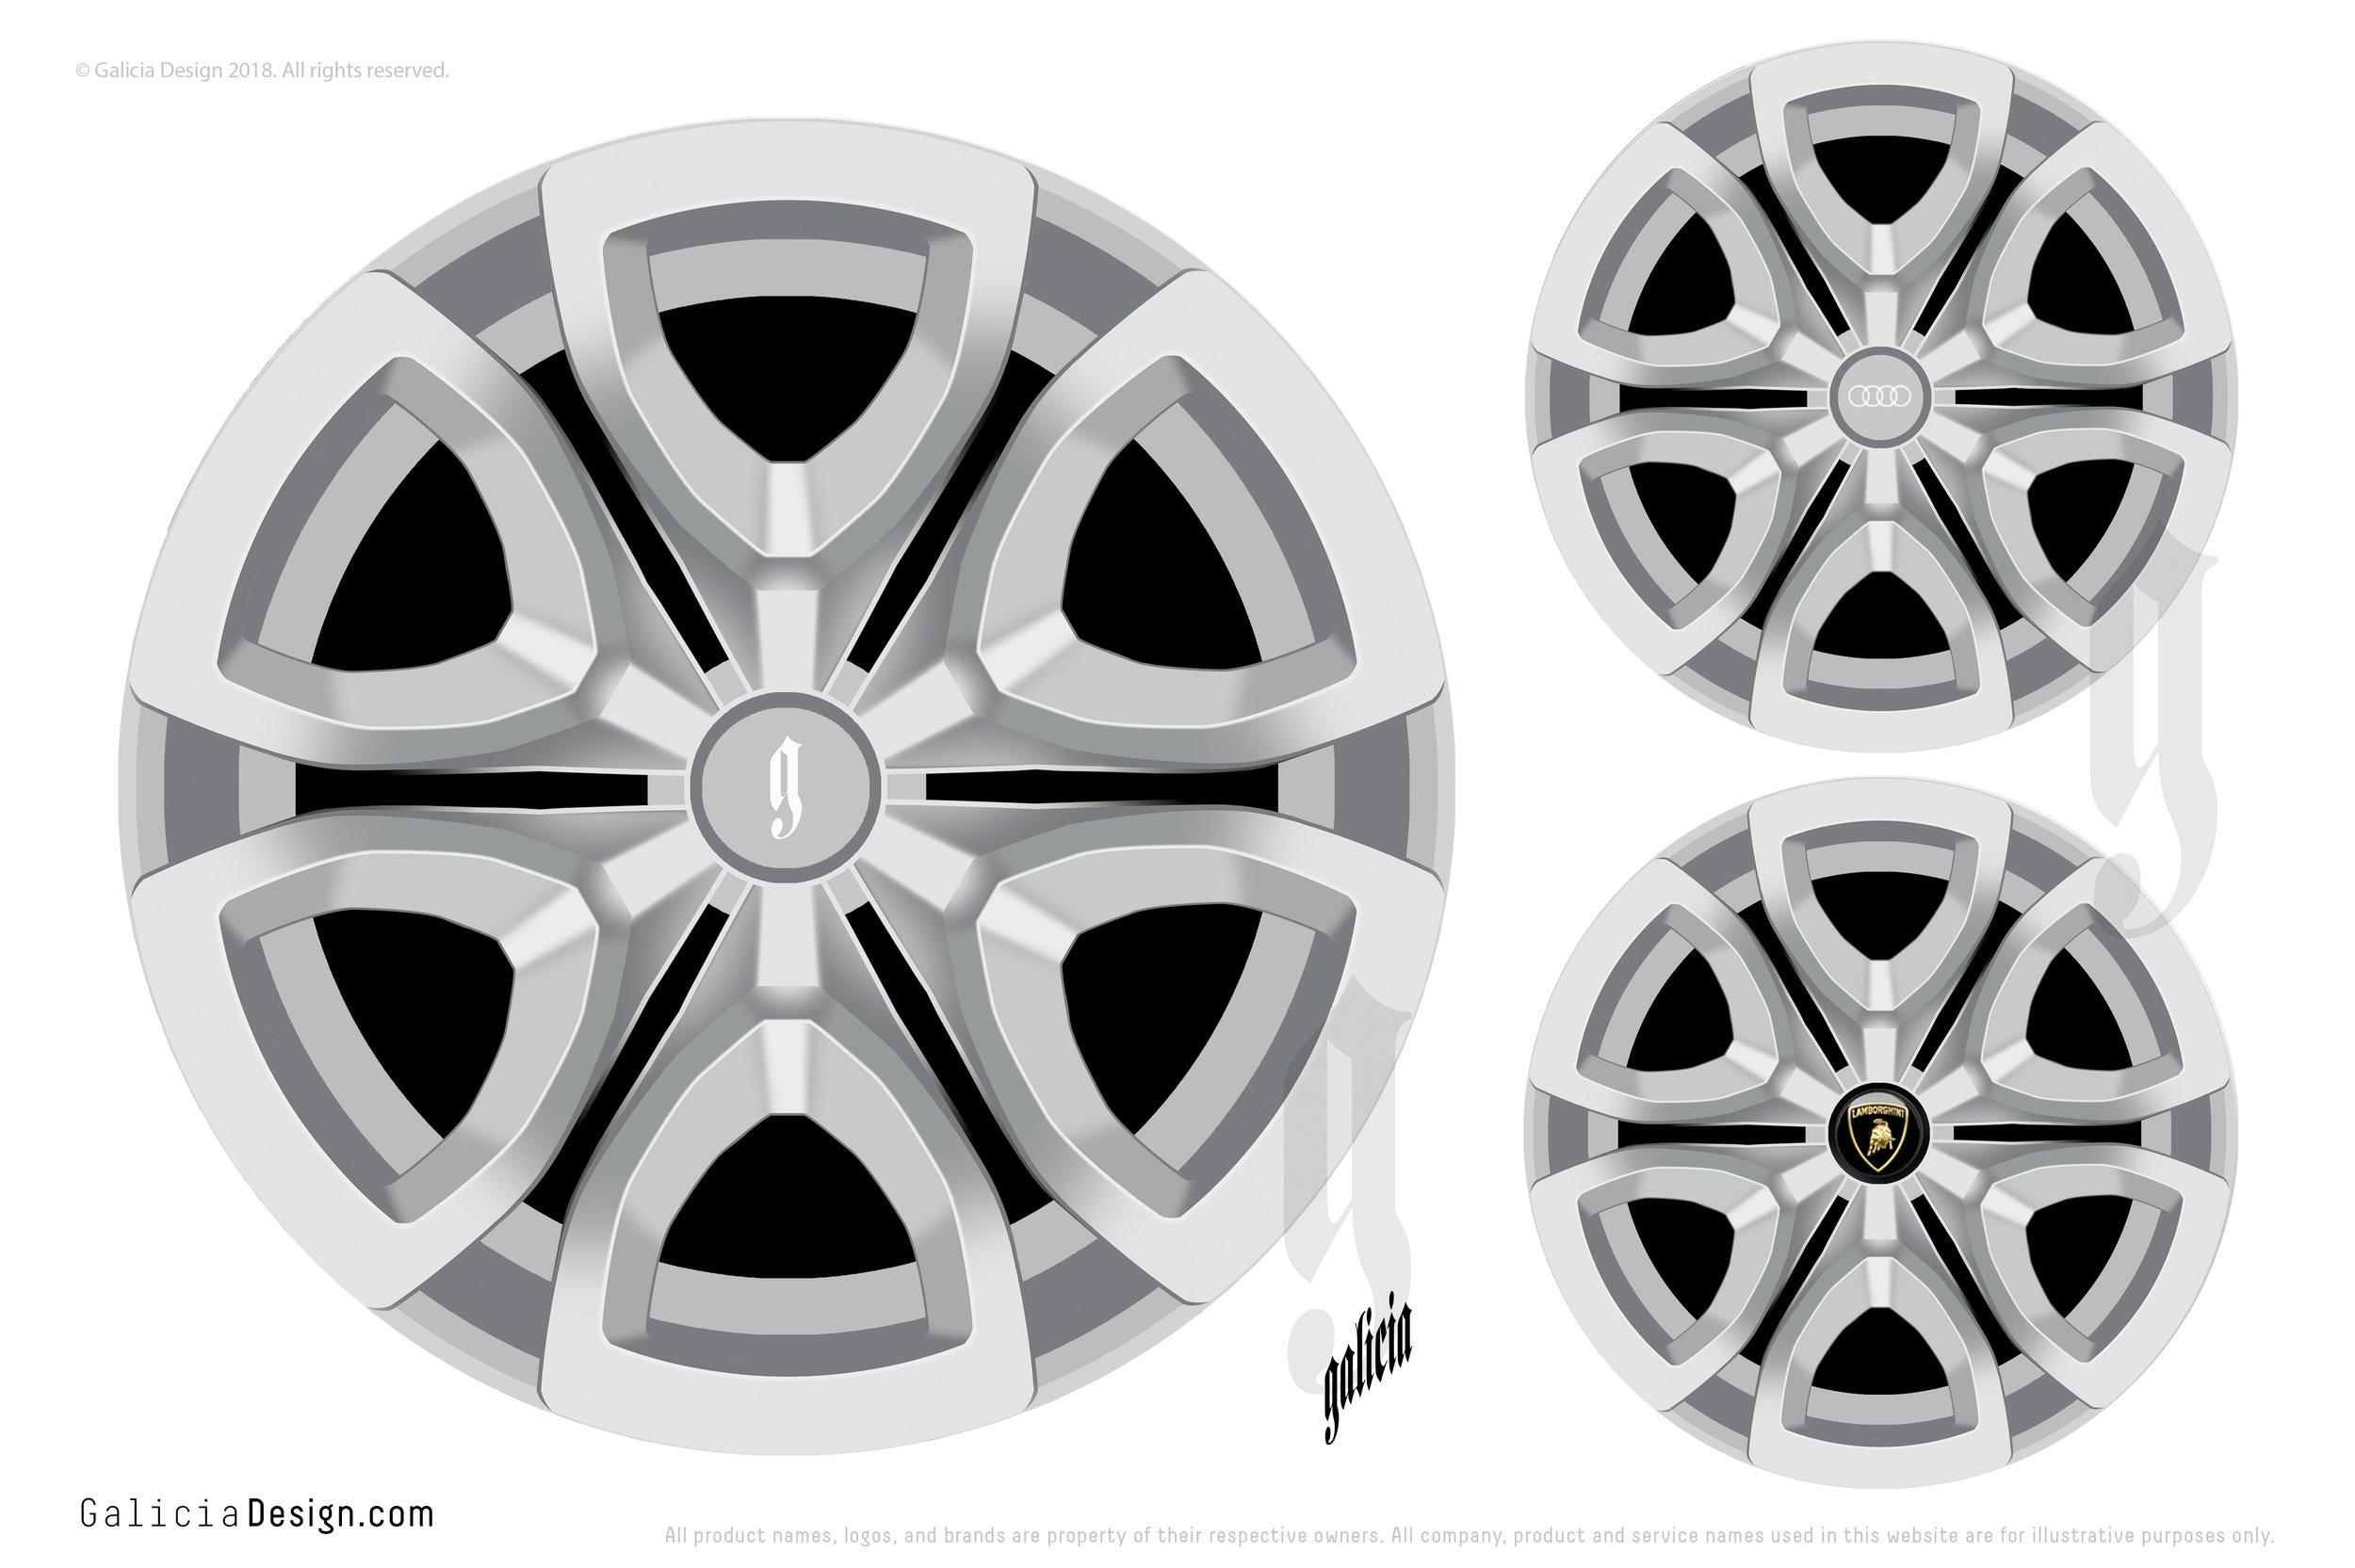 6 spoke wheel - galiciadesign_com.jpg